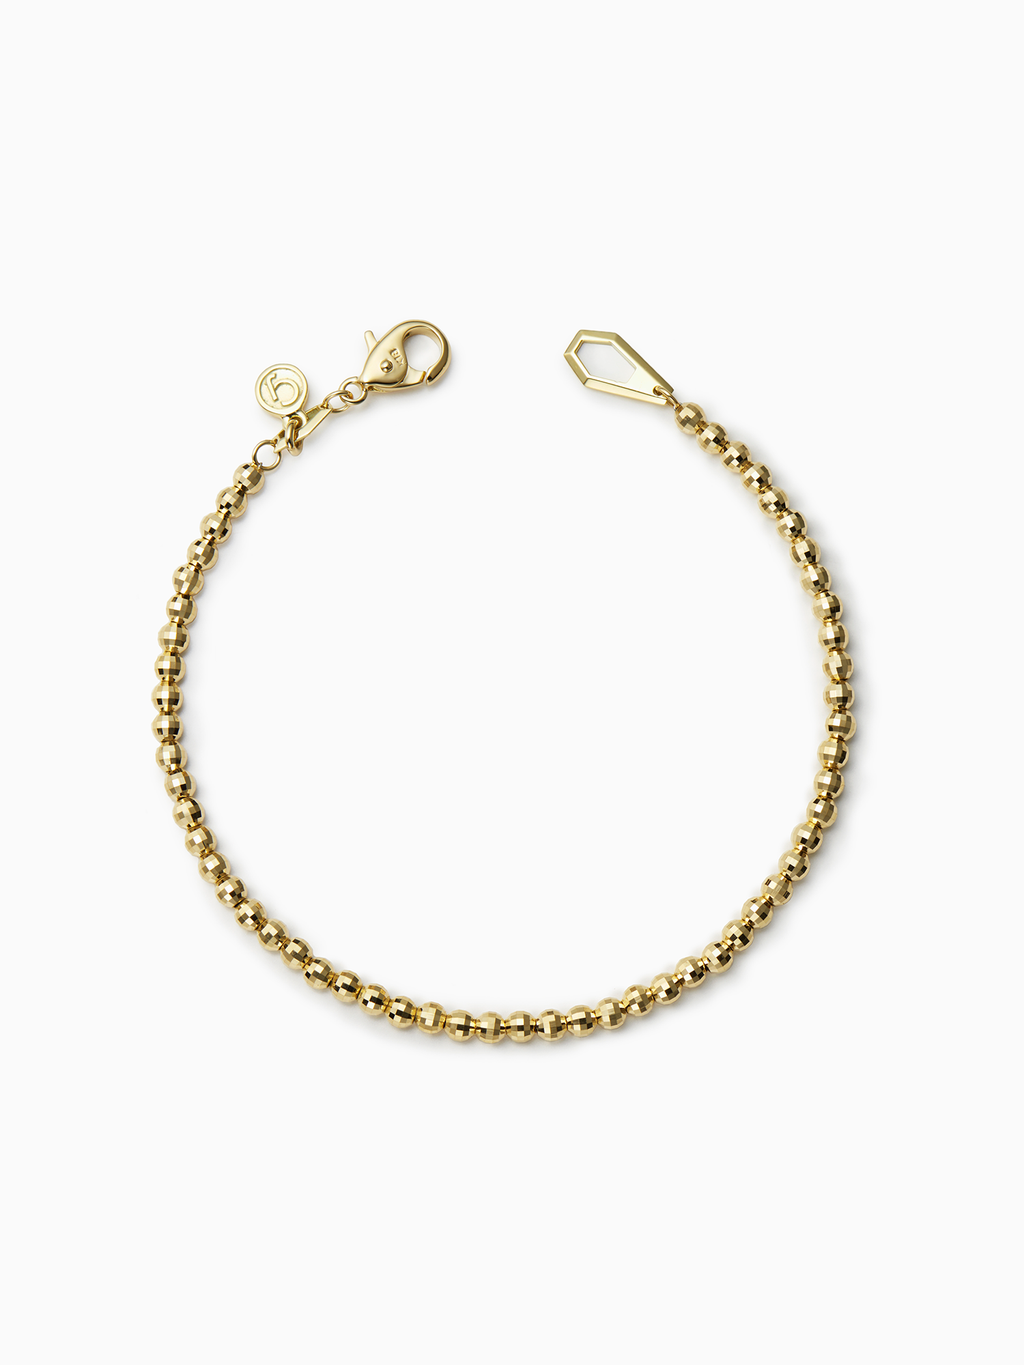 ALECT | BRACELET | MIRROR CUT | GOLD